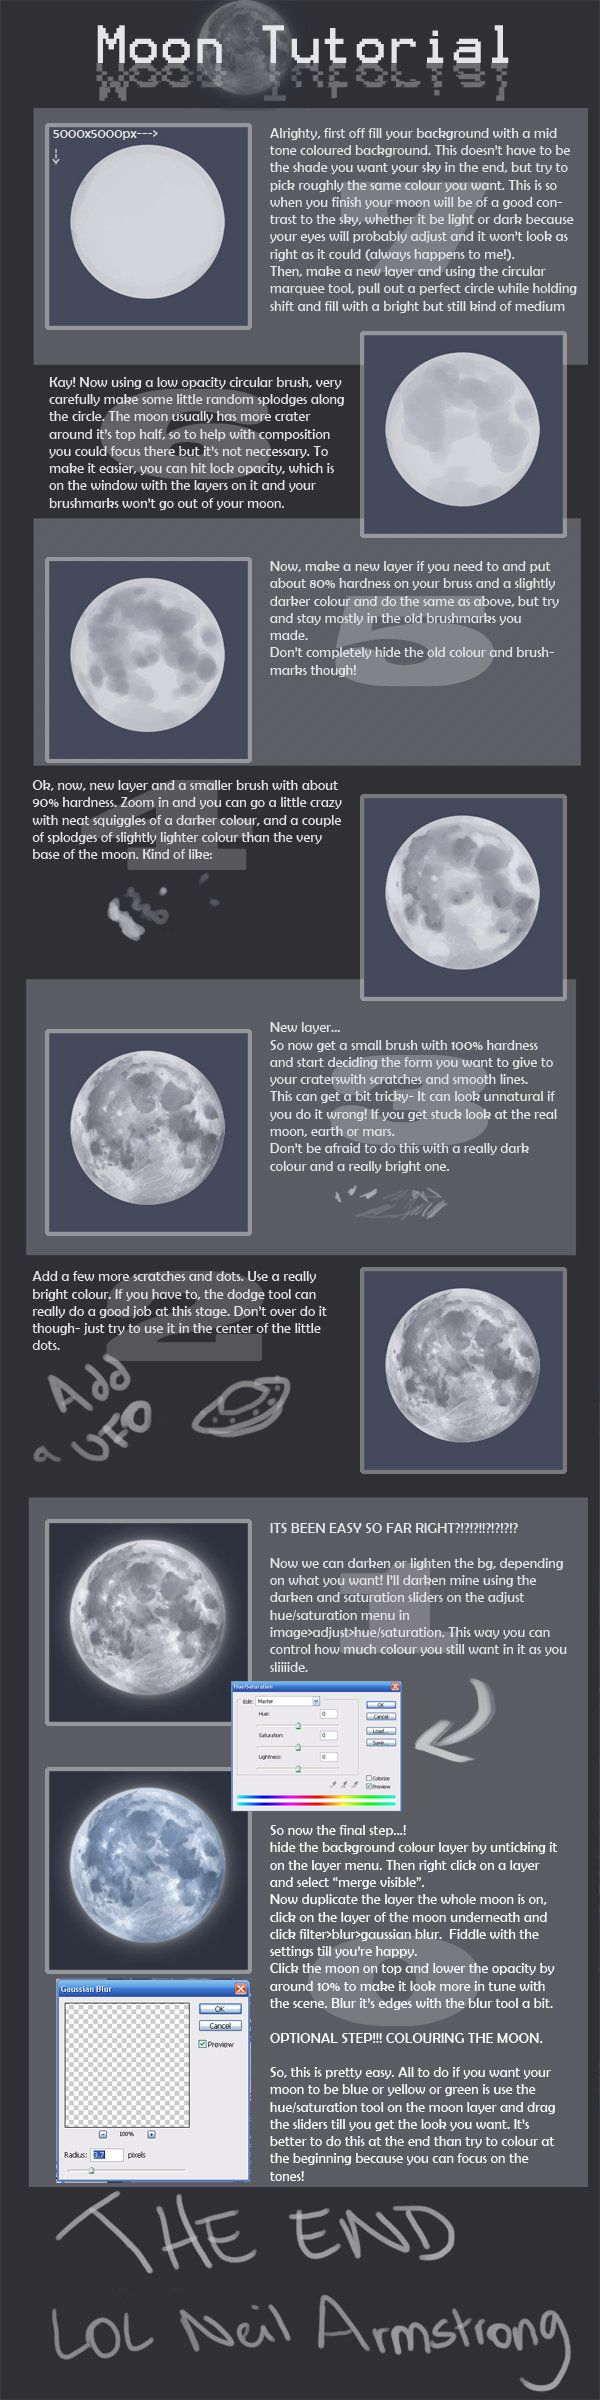 This is a photo of Mesmerizing Photoshop Moon Drawing